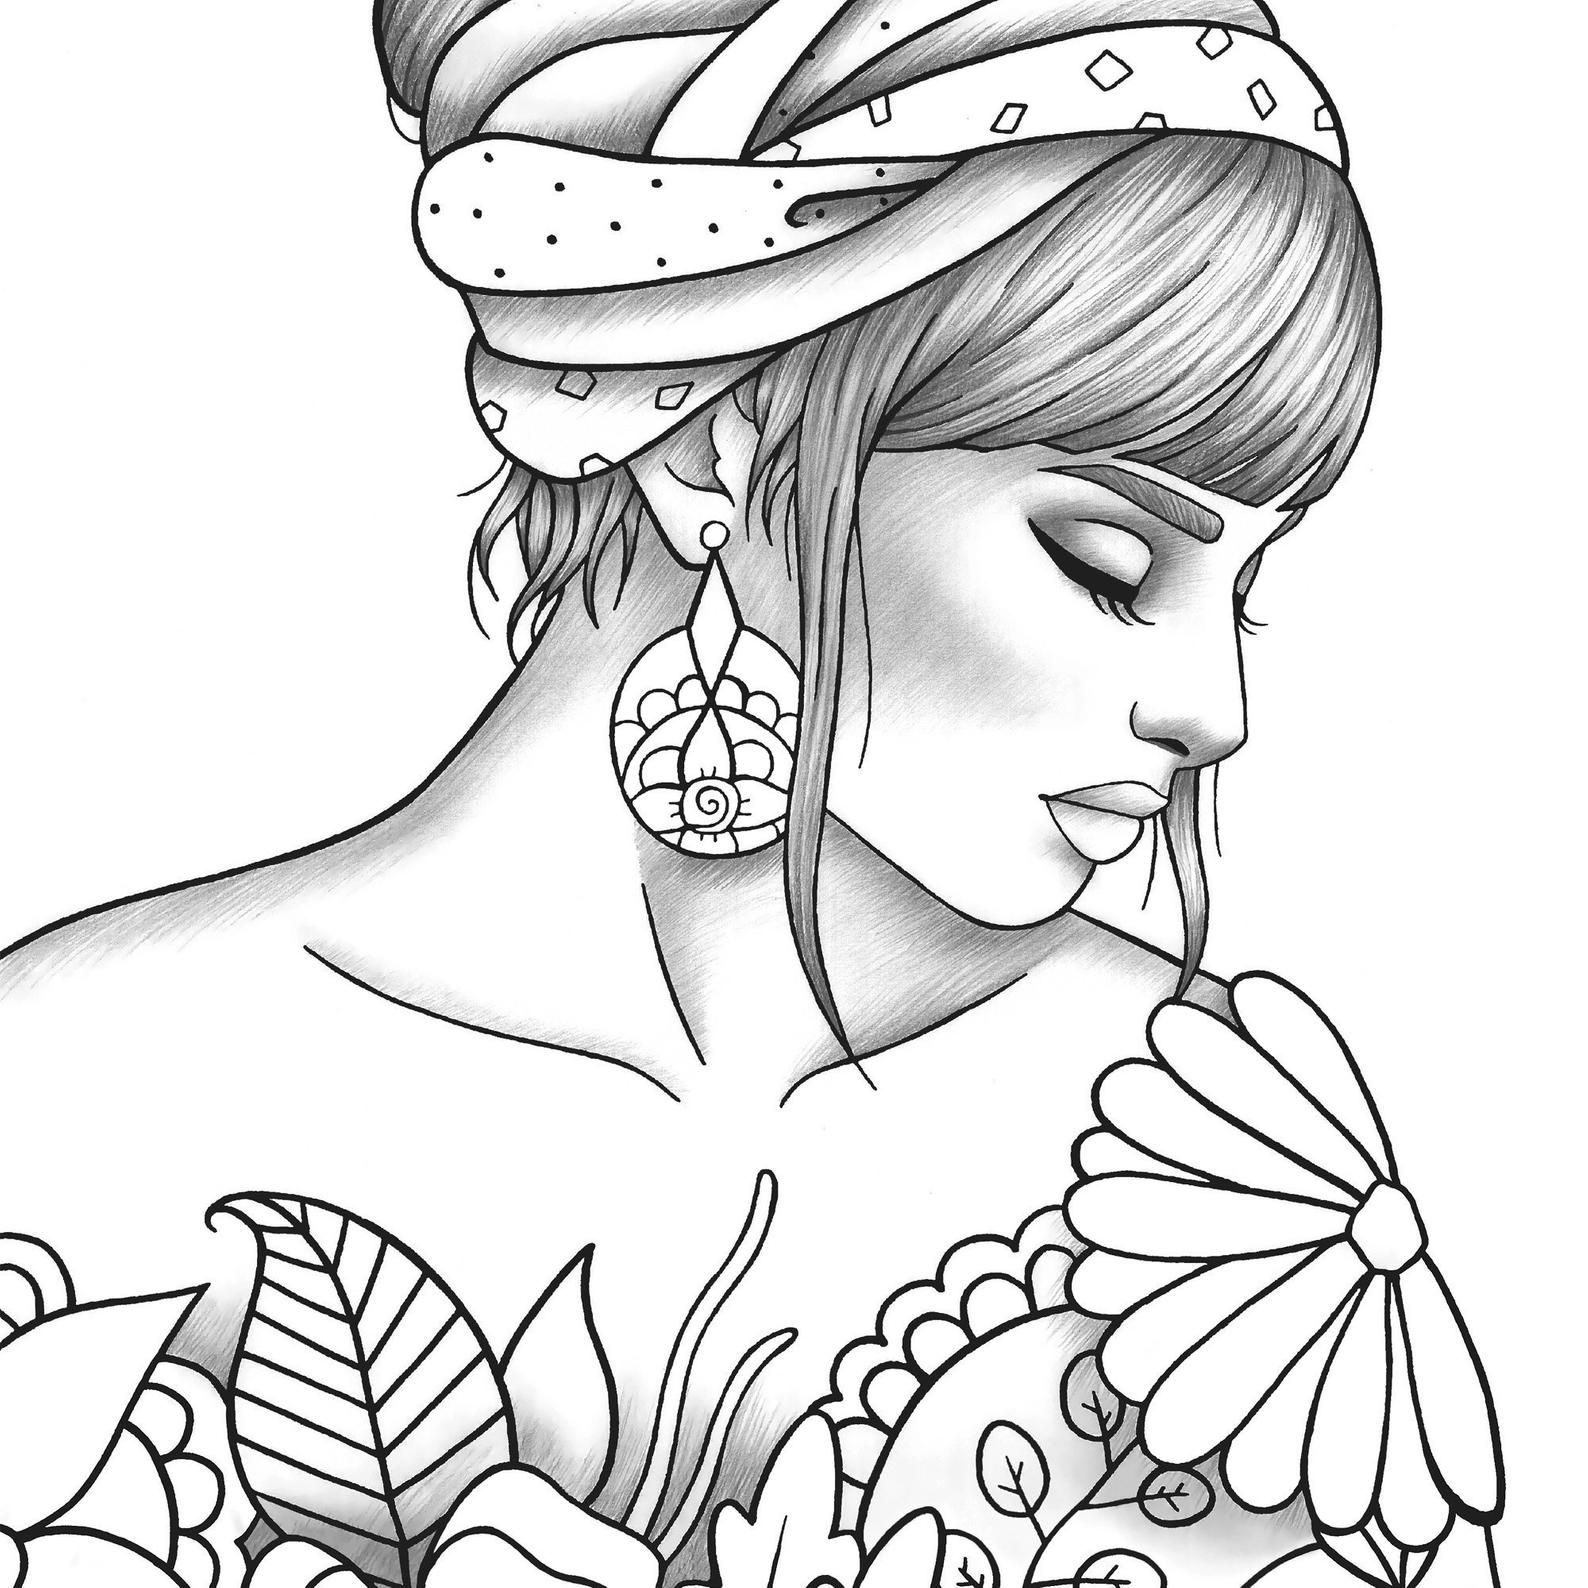 Girly Coloring Pages For Teens In 2020 Coloring Pages For Teenagers Coloring Pages For Girls Horse Coloring Pages